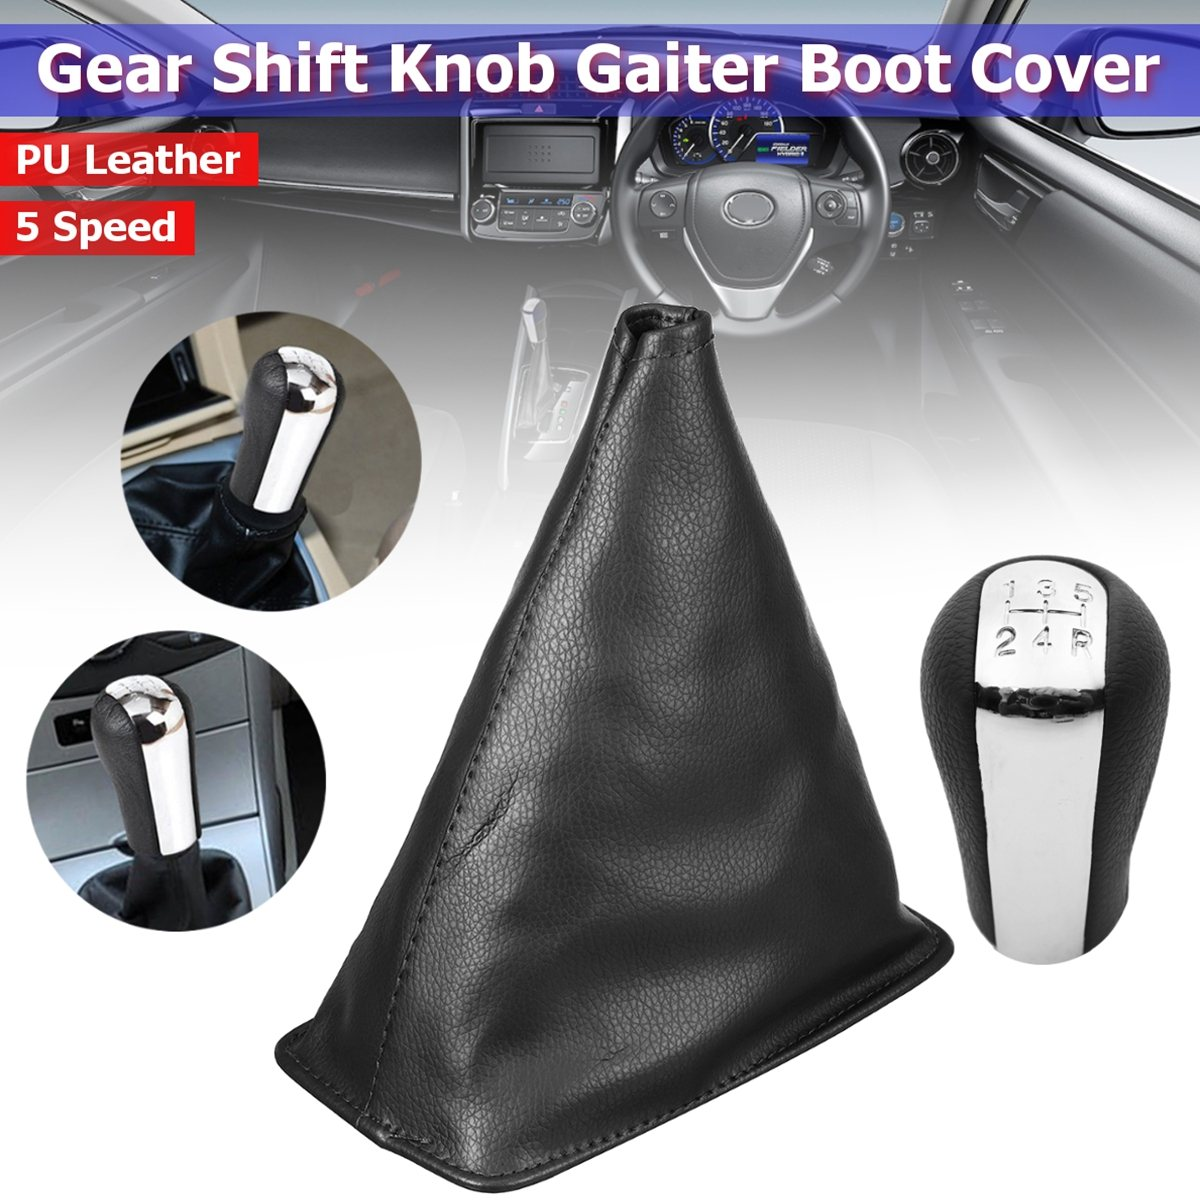 5 Speed Gear Knob Shift PU Leather Gaiter Boot Cover For Toyota Corolla 1998 1999 2000 2001 2002 2003 2004 2005 2006 2007 2008